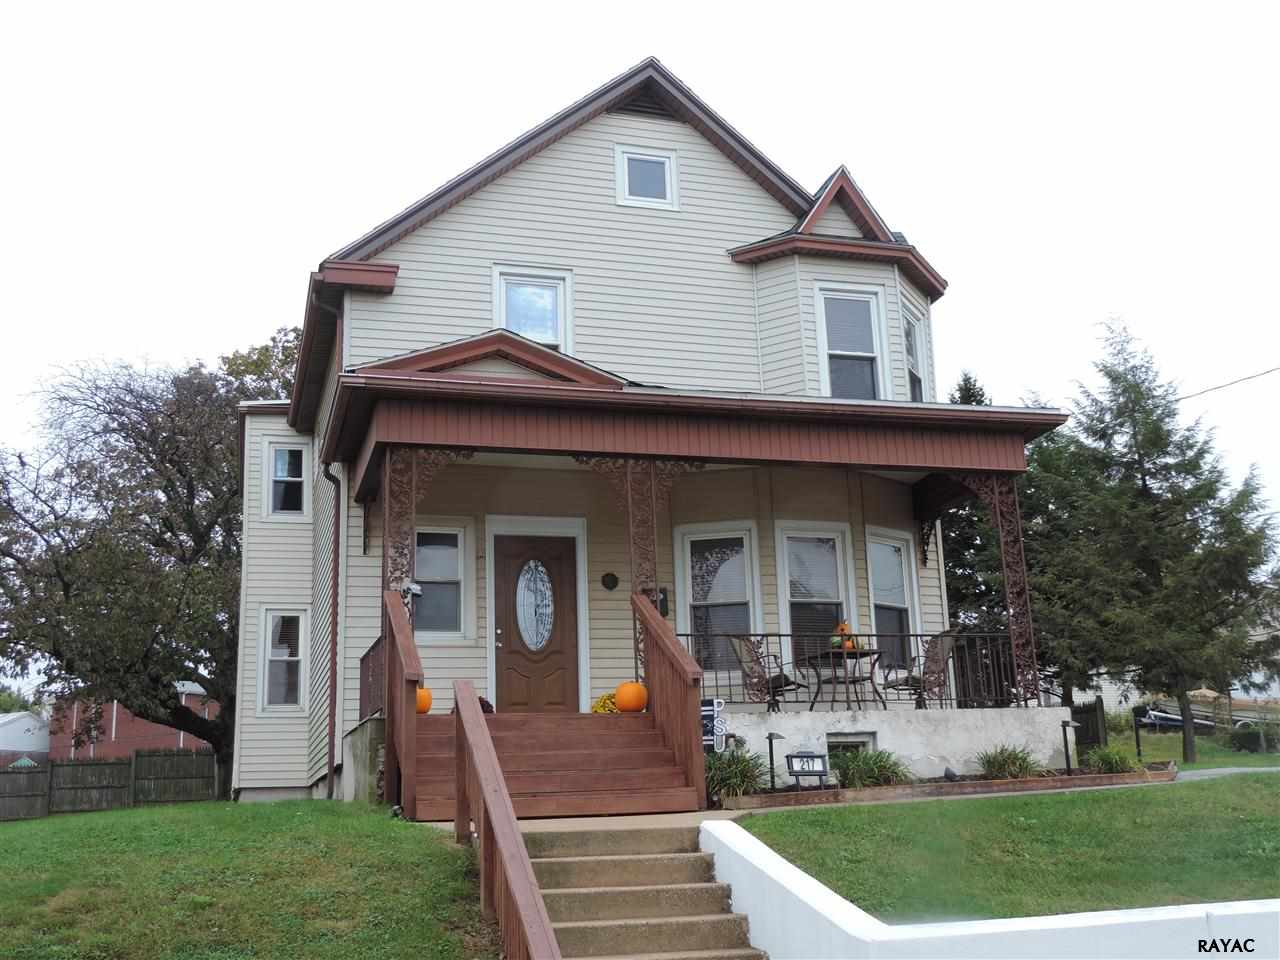 217 N Franklin St, Red Lion, PA 17356